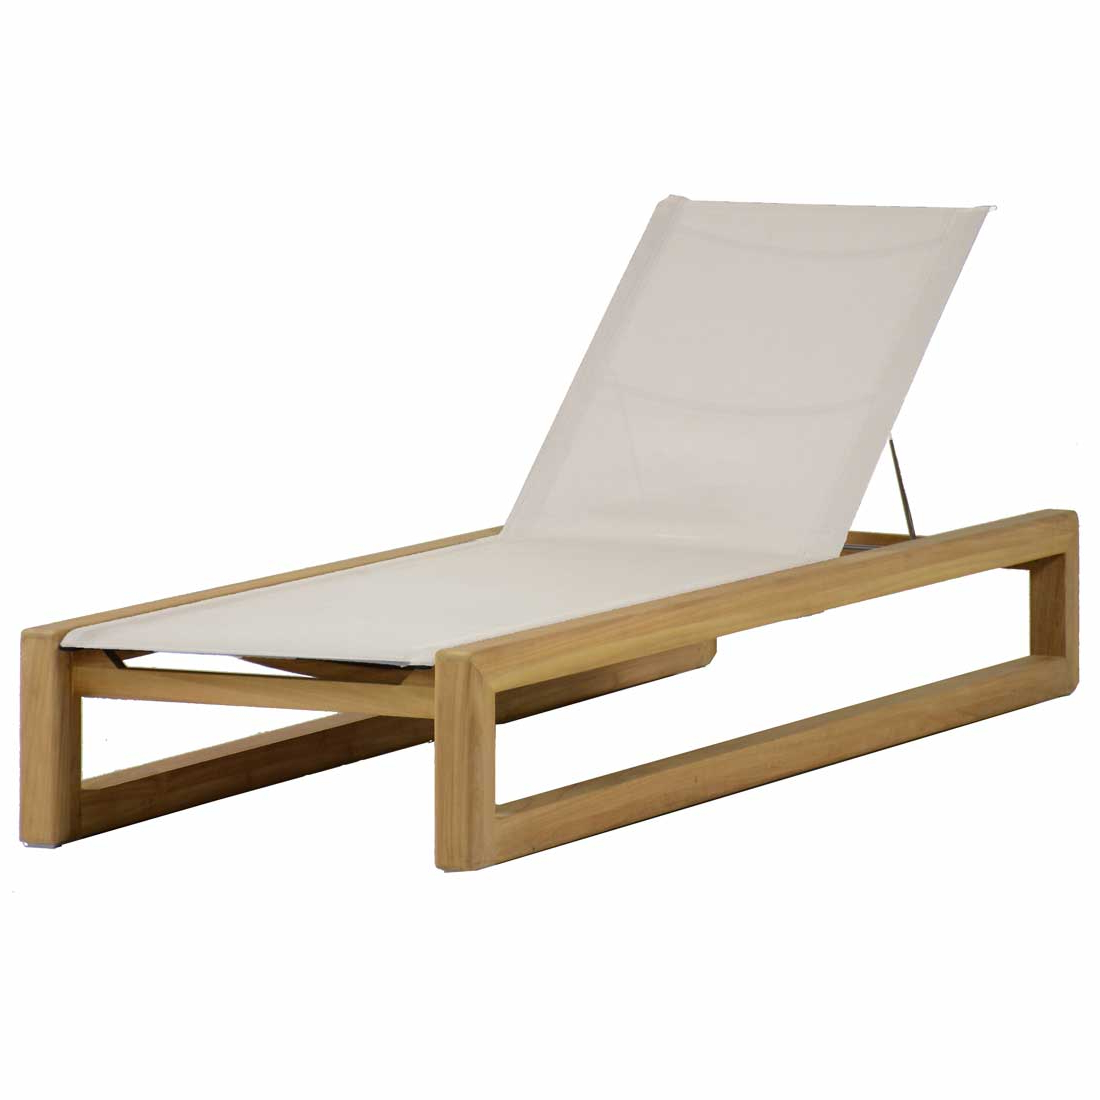 Bali Teak Chaise Lounge – Summer Classics In Famous Teak Chaise Loungers (Gallery 10 of 25)